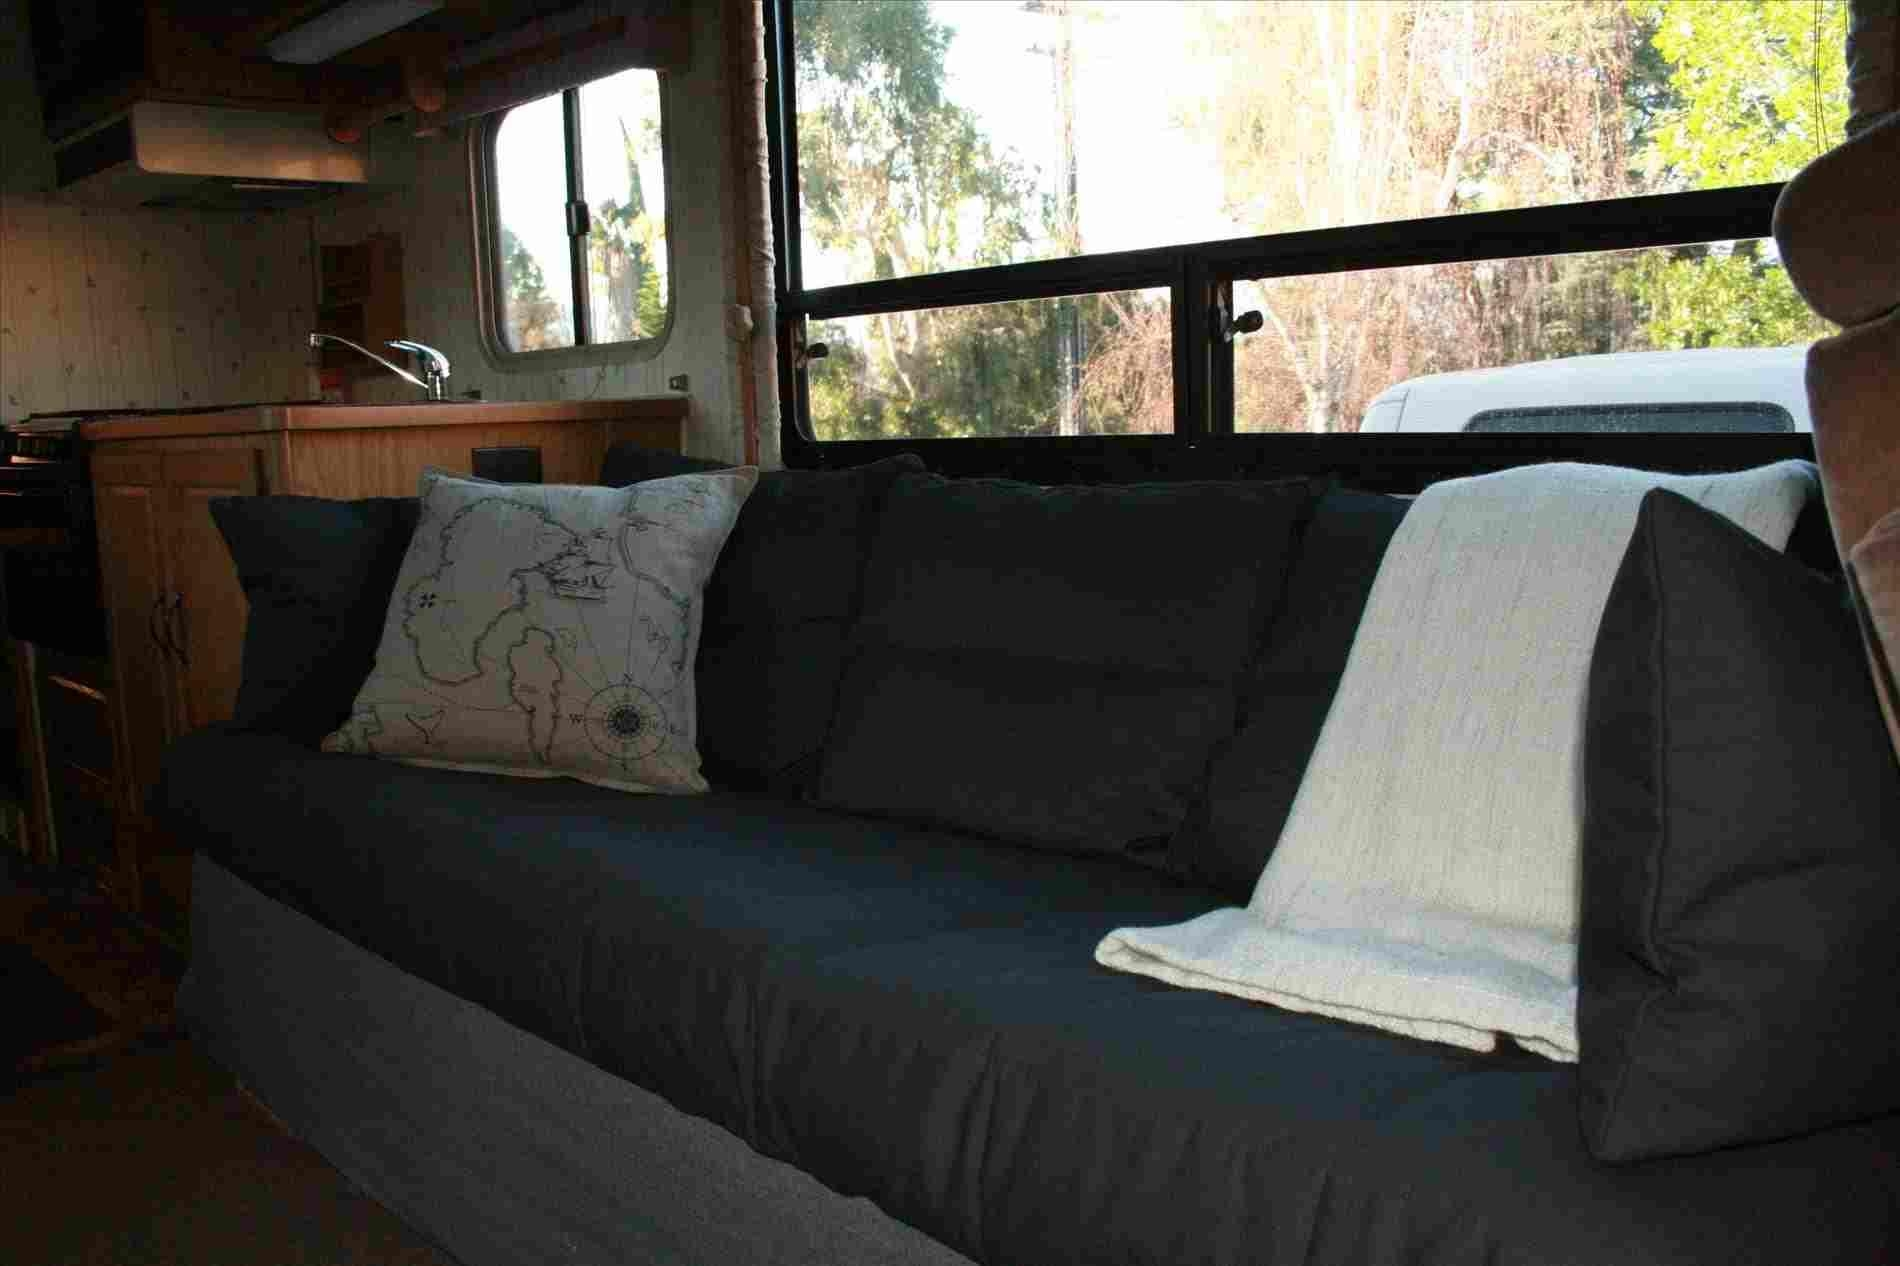 Rv Sofa Diy Rv Sofa Bed Home Design Ideas Diy Rv Sofa Bed Avworld